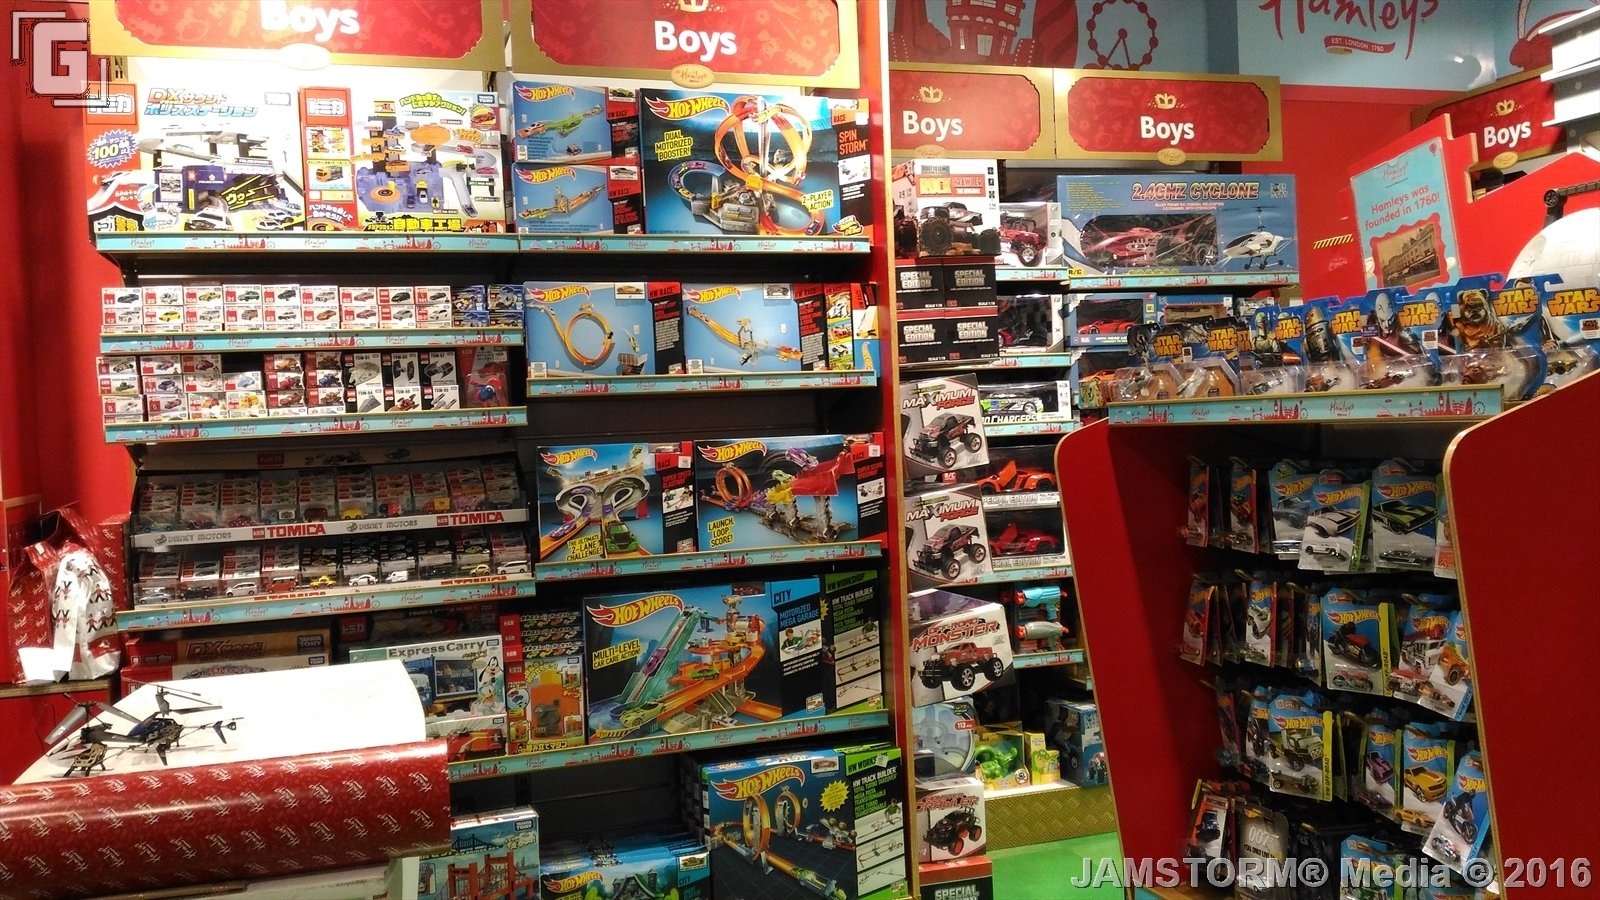 Toys From Hamleys : Geekmatic inside hamleys toys at central square